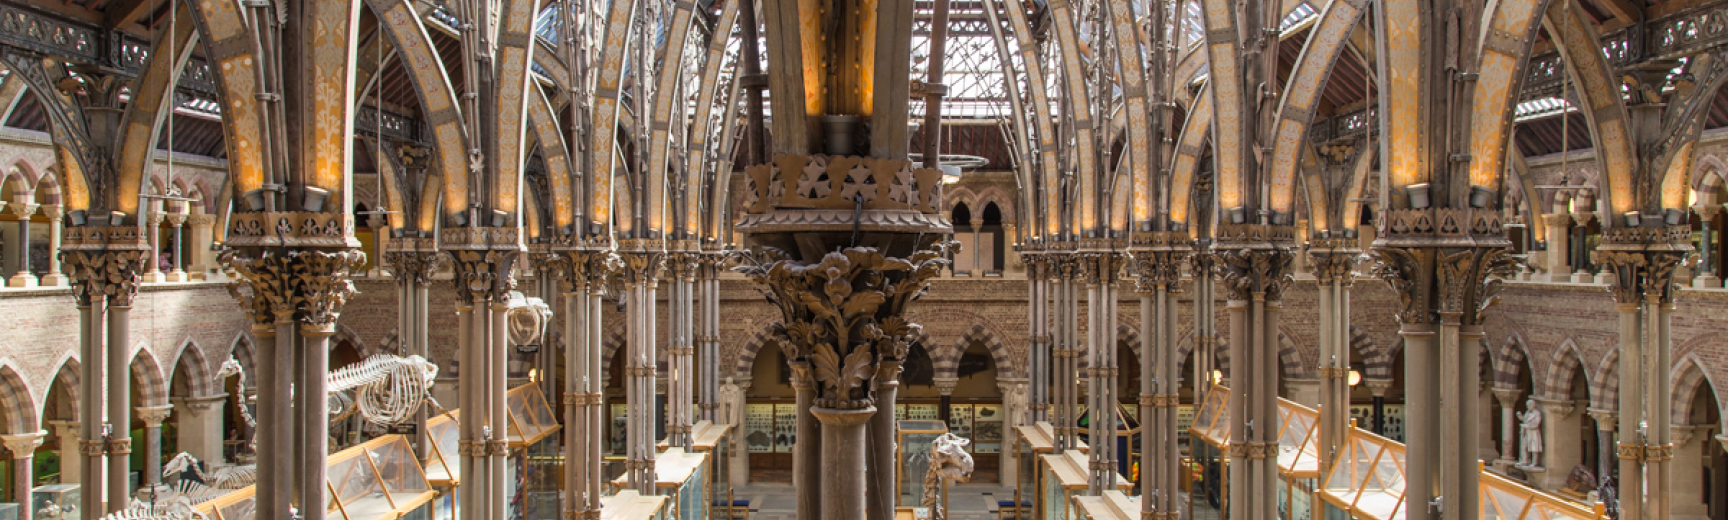 Oxford University Museum of Natural History main court